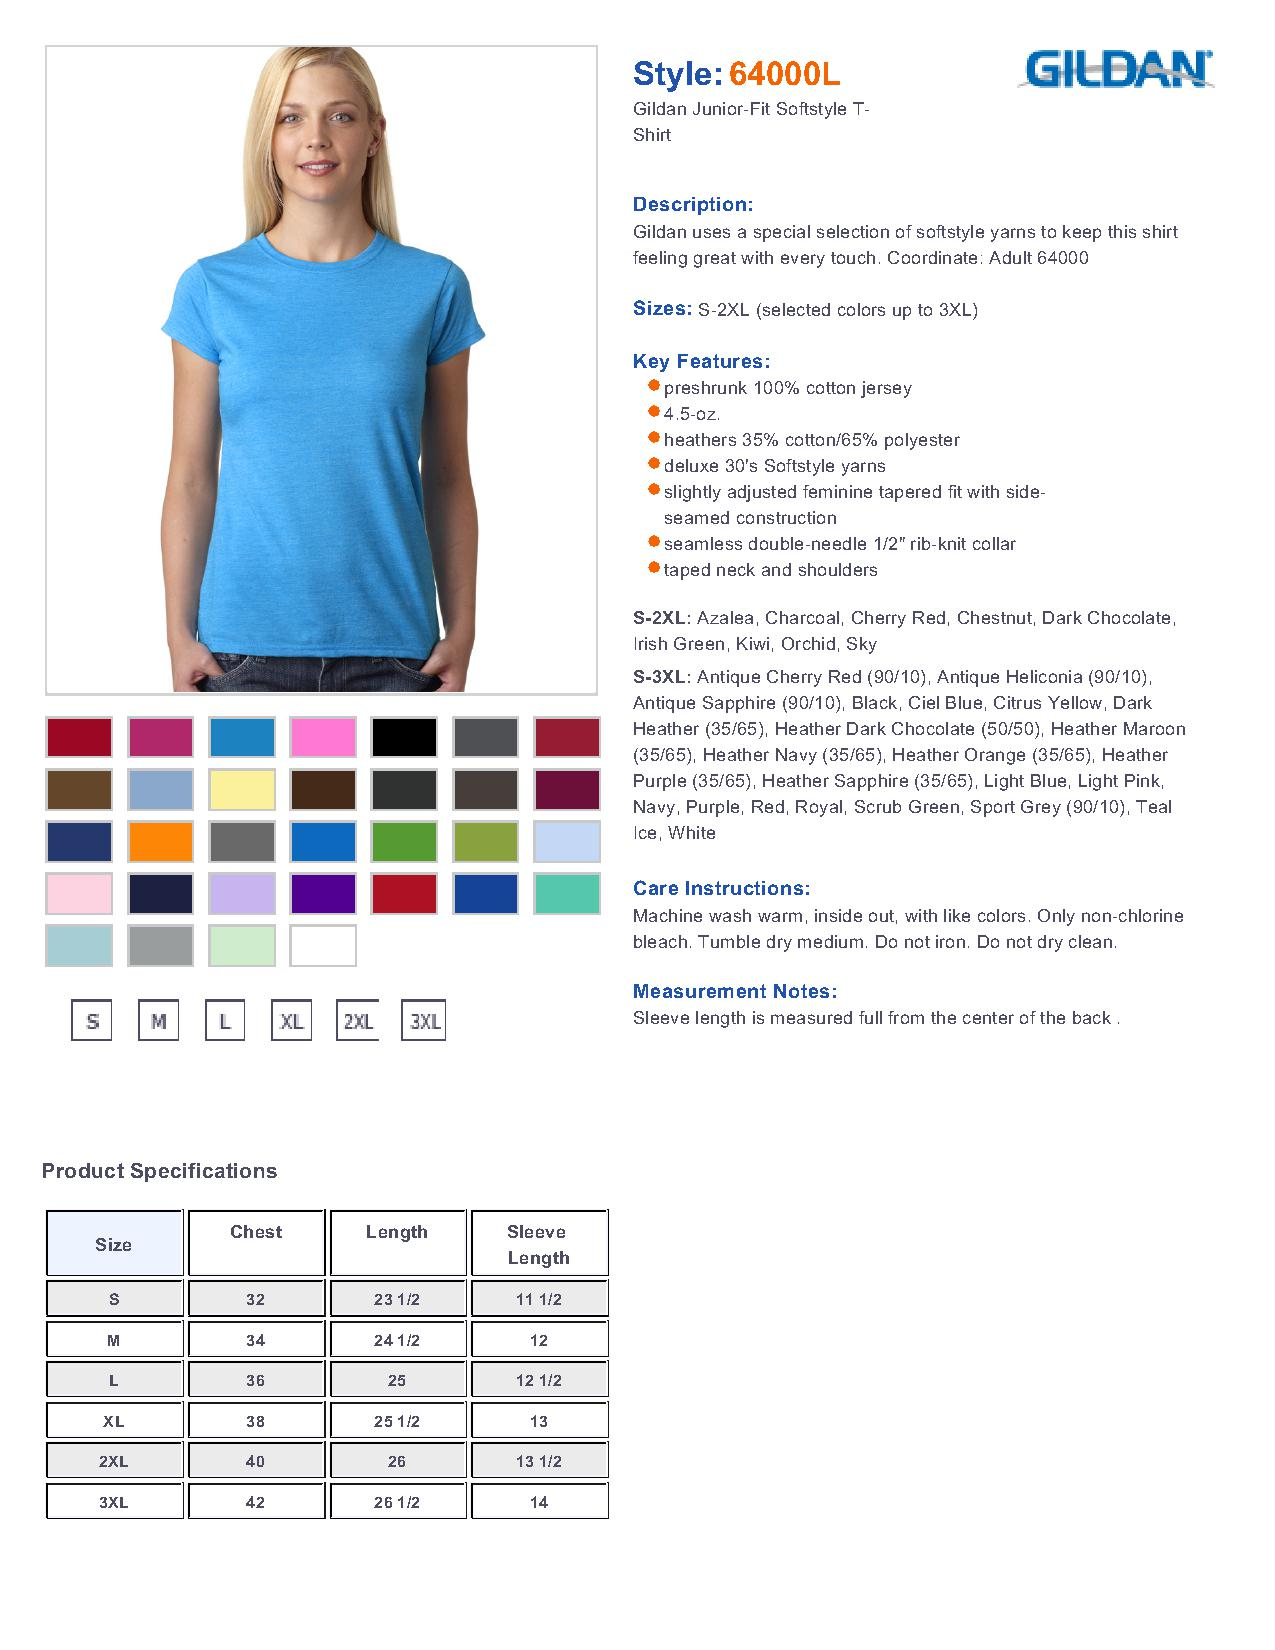 Gildan 64000l ladies softstyle t shirt 242 t shirts specs sizing specs nvjuhfo Image collections